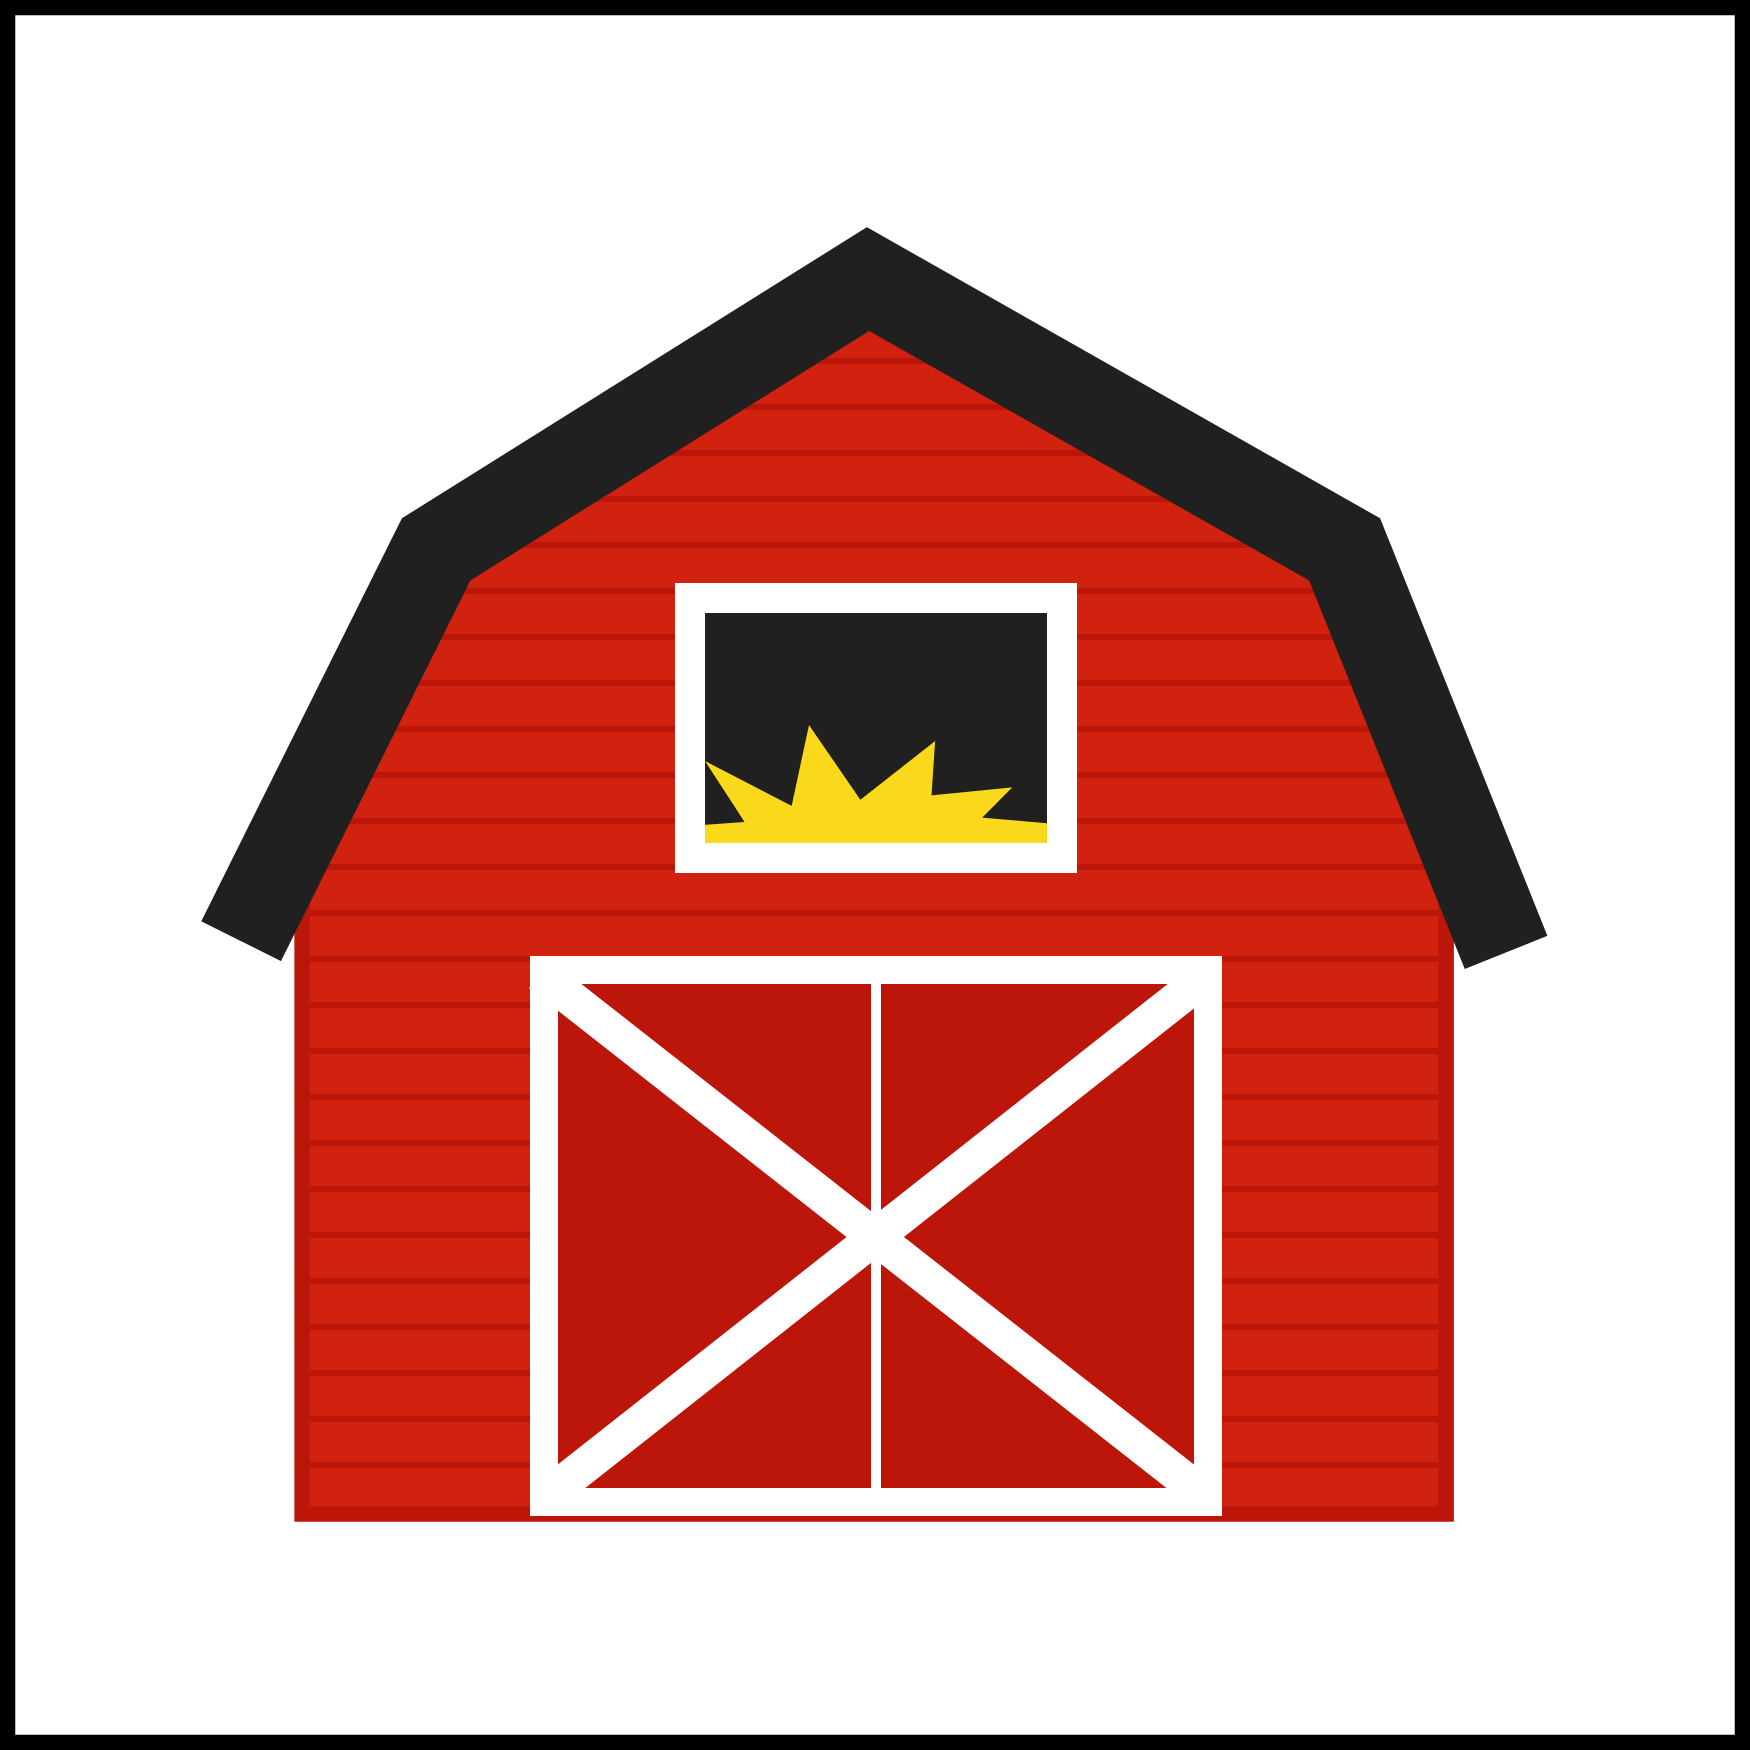 Farmhouse clipart barn silo, Farmhouse barn silo Transparent FREE.